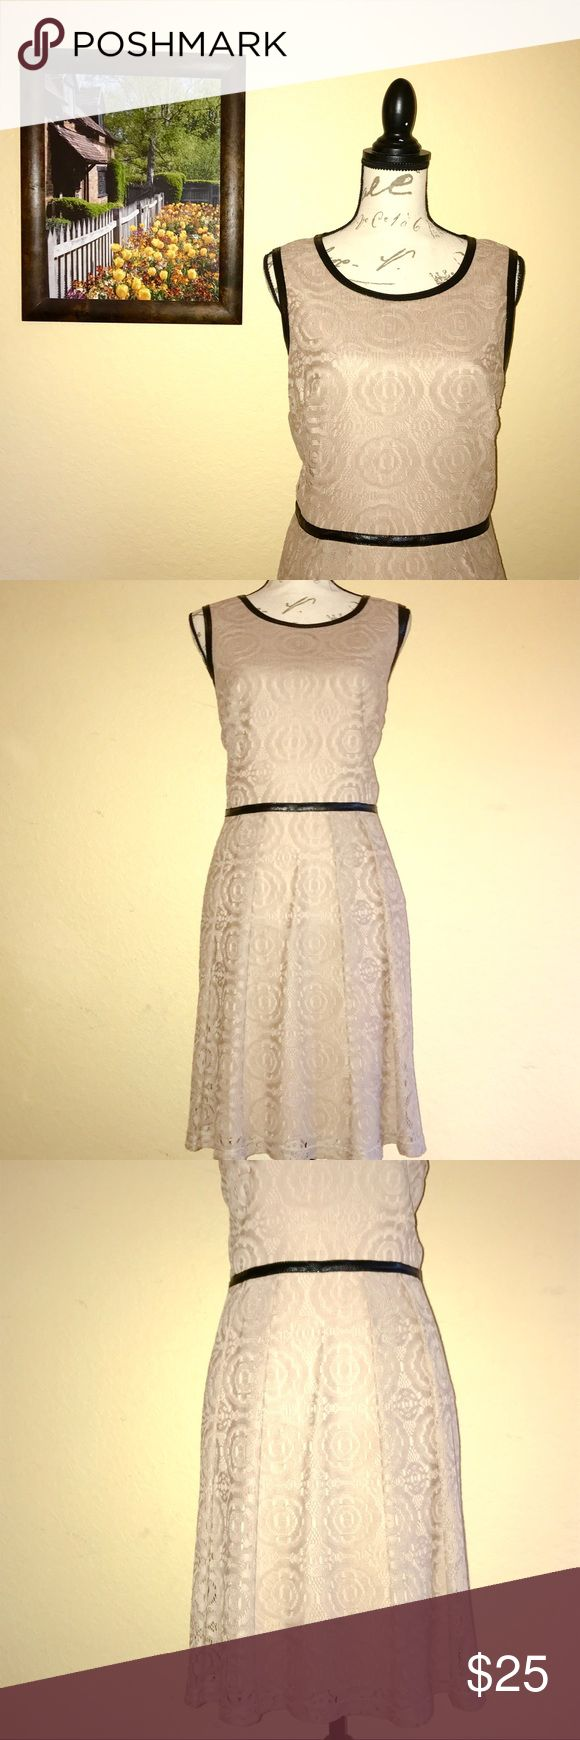 Leather & Lace Dress Tan lace dress with black faux leather trim. Keyhole closure in back and side zipper. The is a little bit of pilling from a sweater worn over dress under one arm. Otherwise, great used condition. Pet and smoke free home. Modcloth Dresses Midi